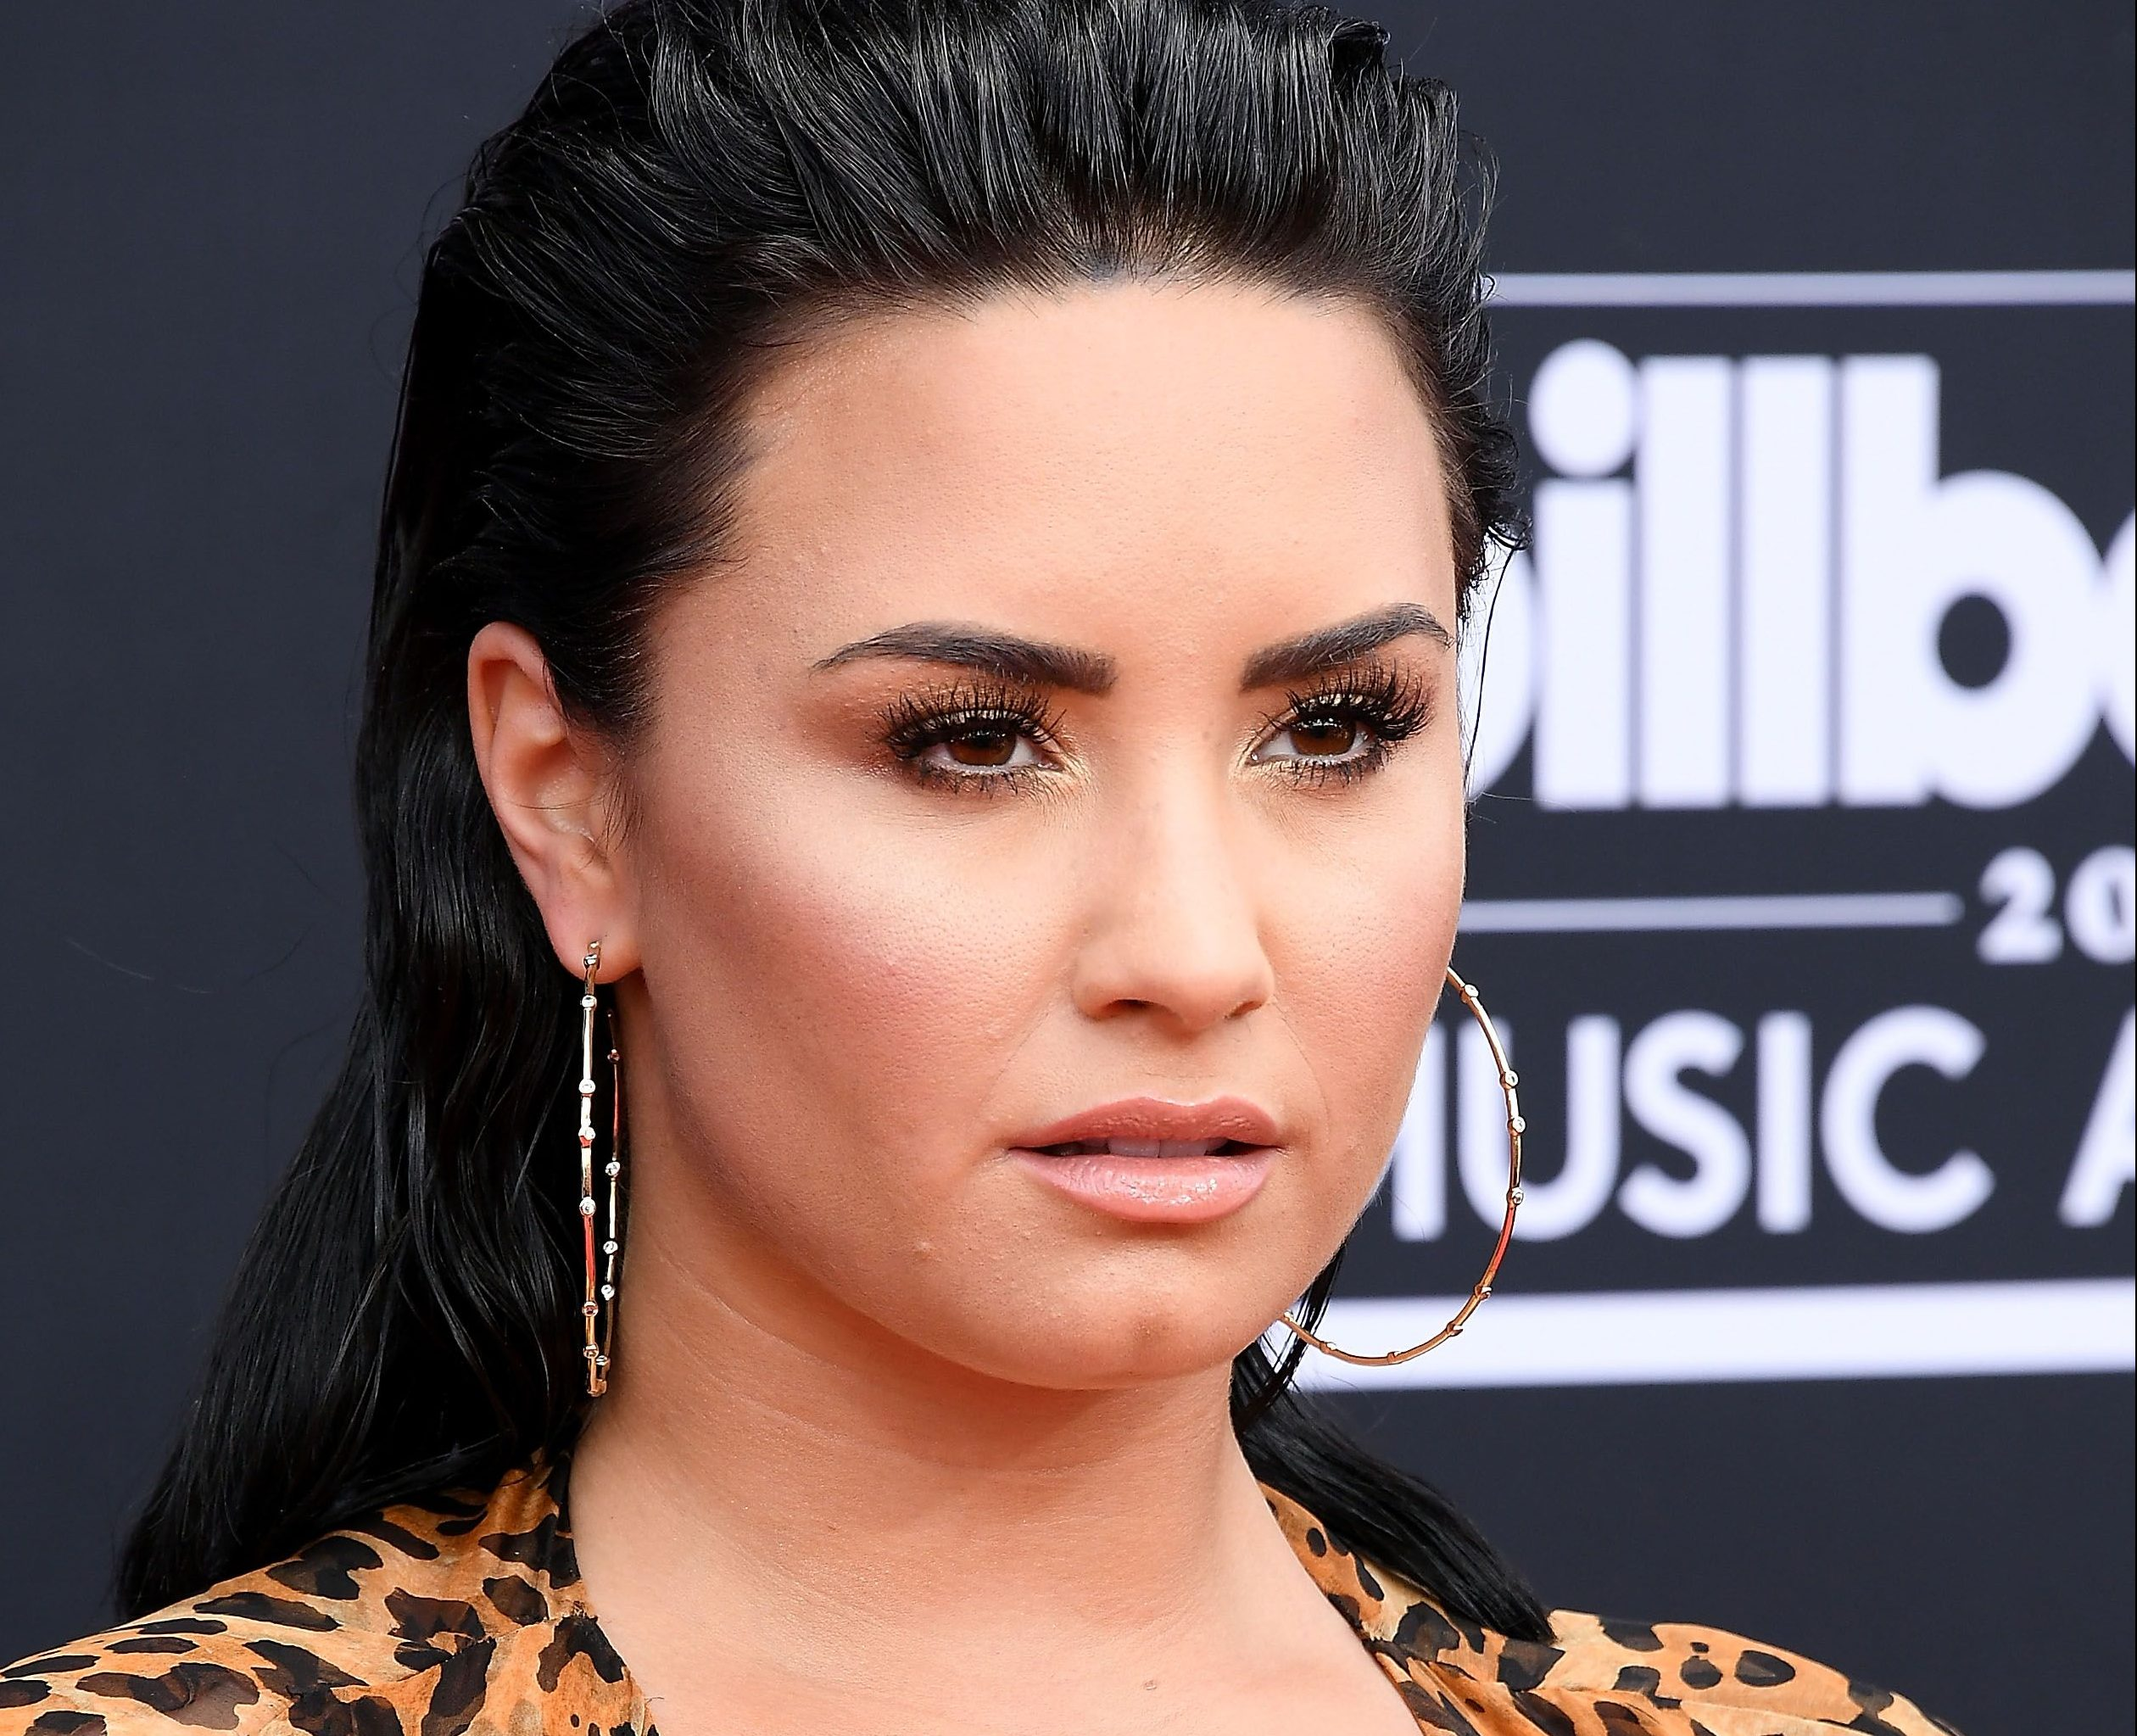 Demi Lovato's screen career from Barney and Friends to The X Factor USA